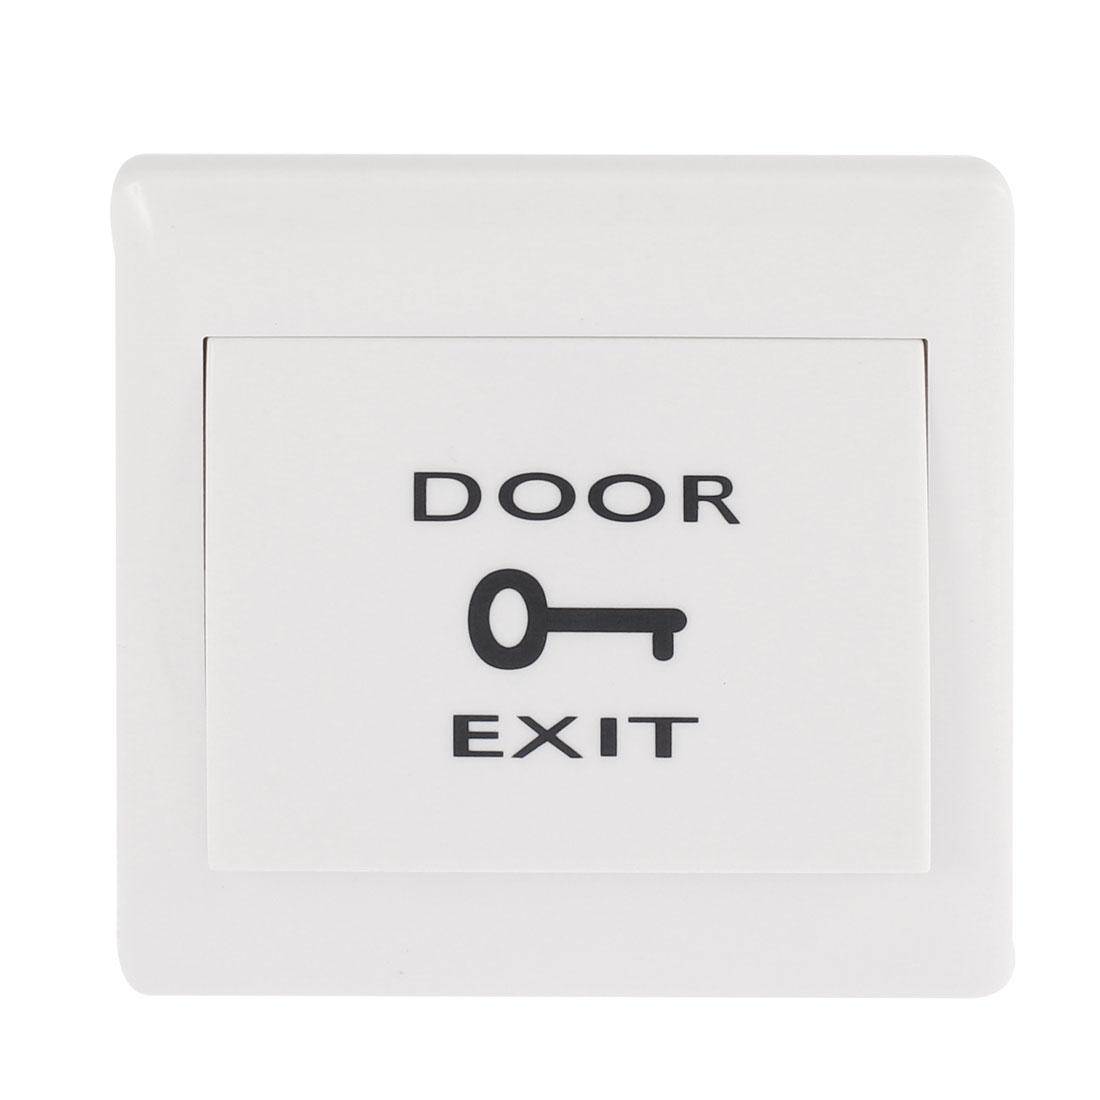 Door Electric Access Control Exit Push Release Button Switch White